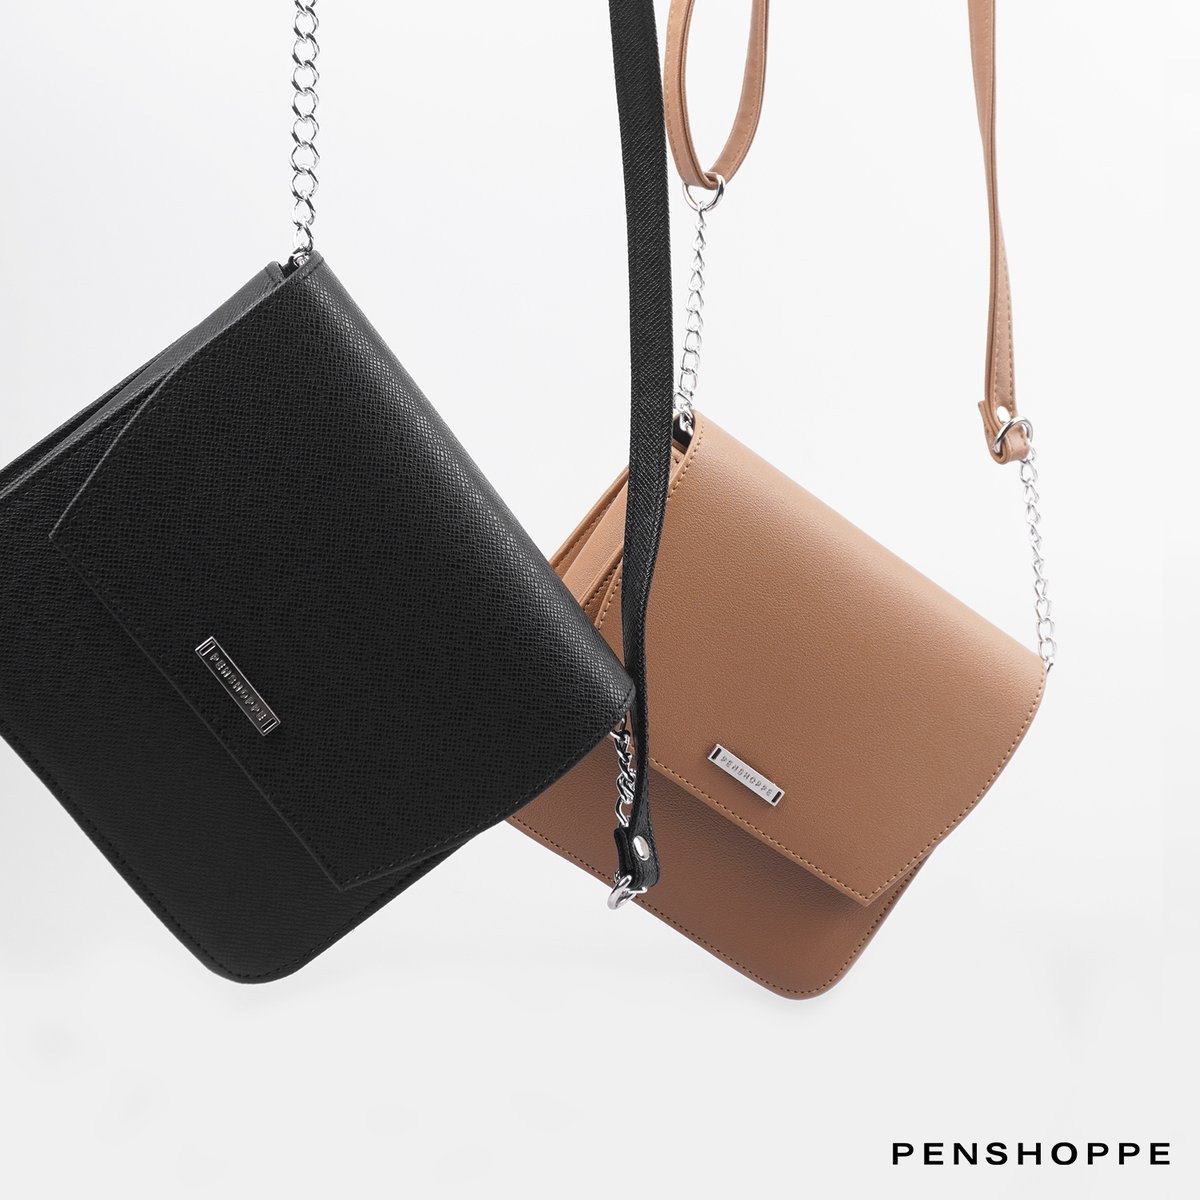 If you're looking for a sign to finally get a sling bag - this is it. 😋   #Penshoppe Ladies' Sling Bag P549  Grab them here: